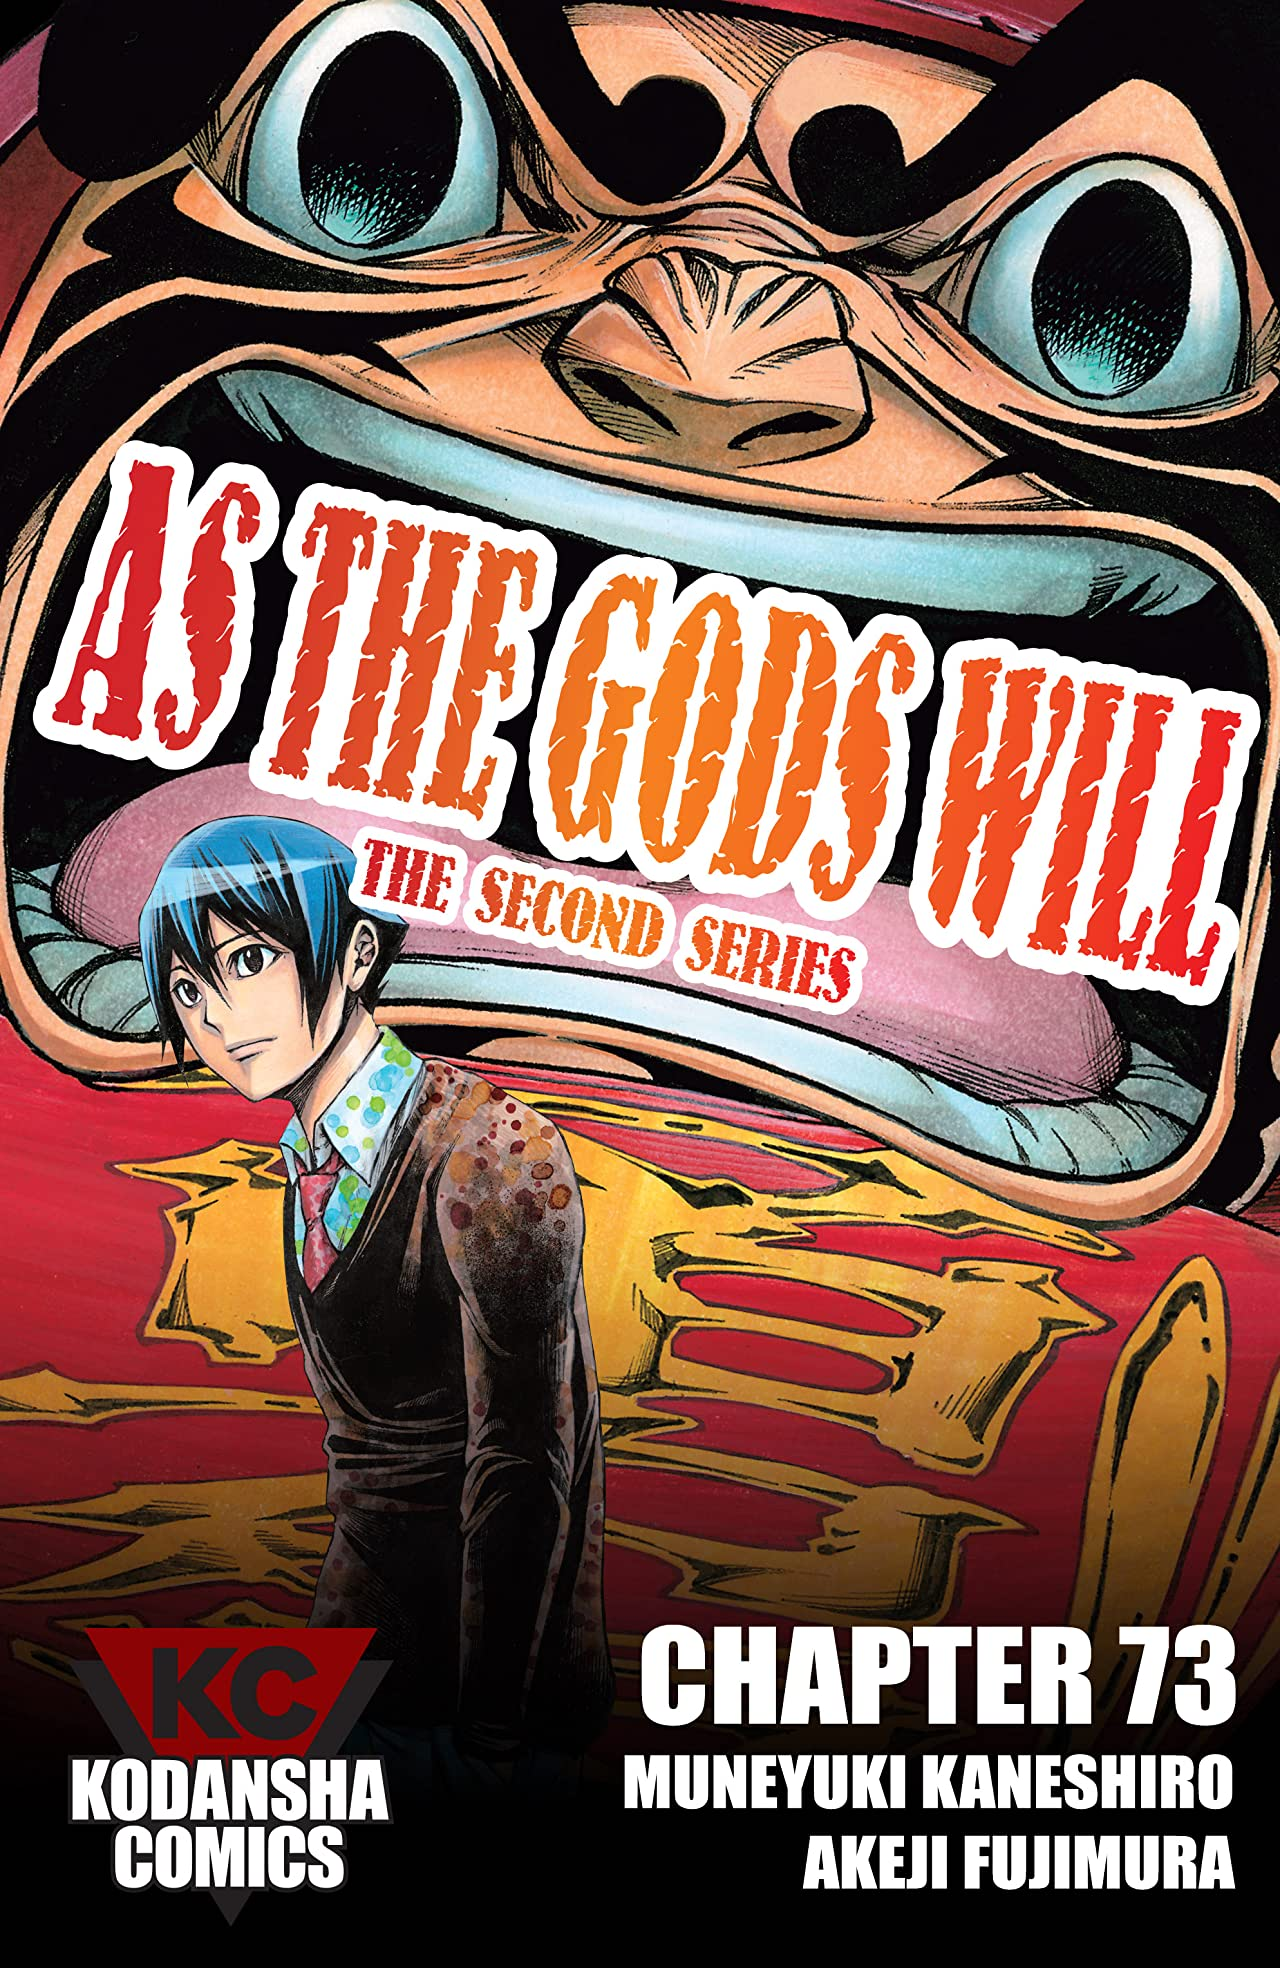 As The Gods Will: The Second Series #73